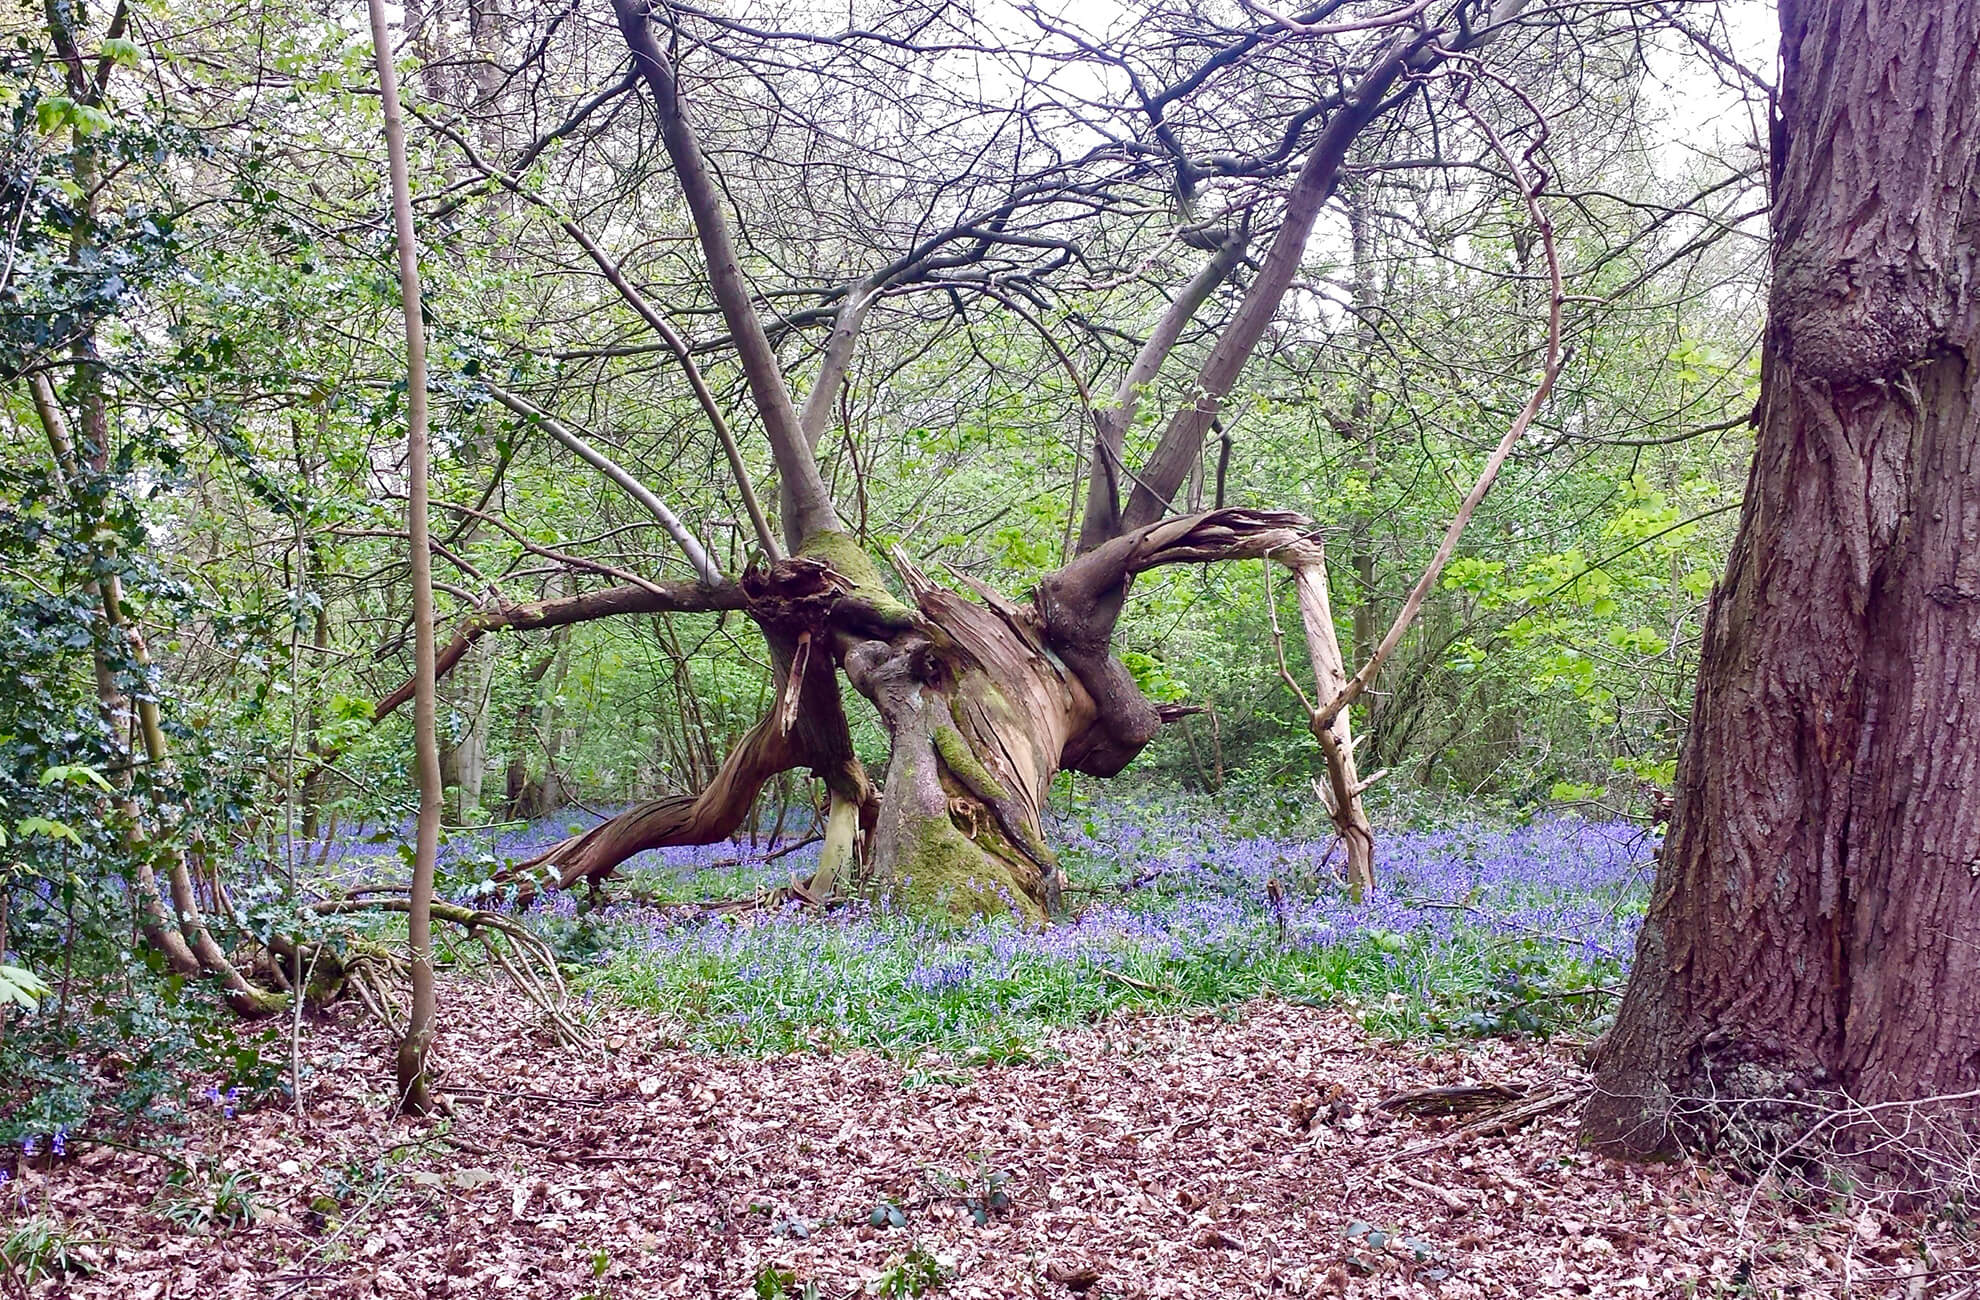 A carpet of stunning bluebells covers the floor in the woodlands at Combermere Abbey